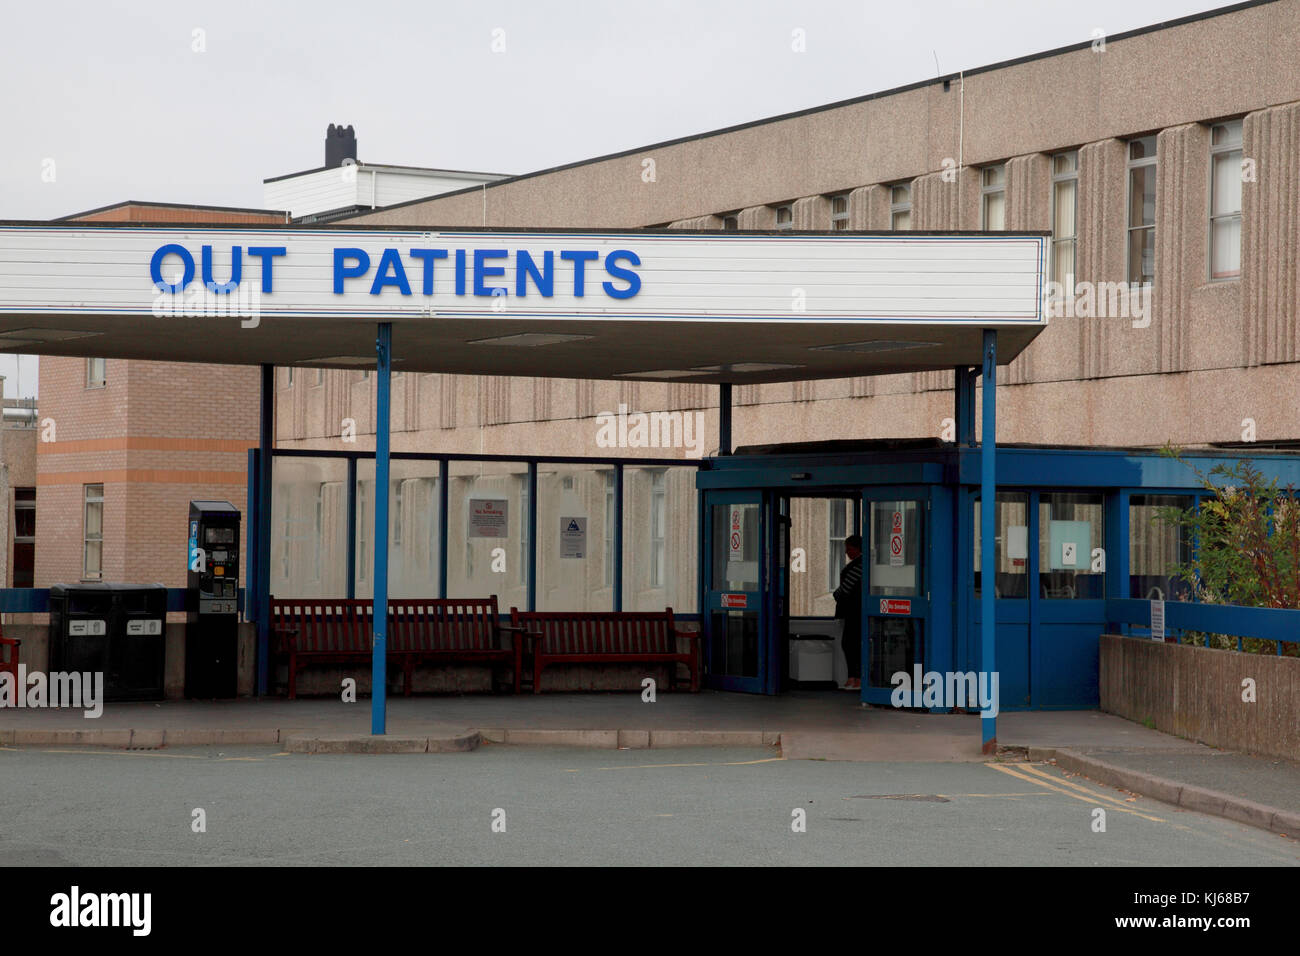 Entrance to the Out Patients department of the NHS Royal Shrewsbury Hospital, a teaching hospital - Stock Image